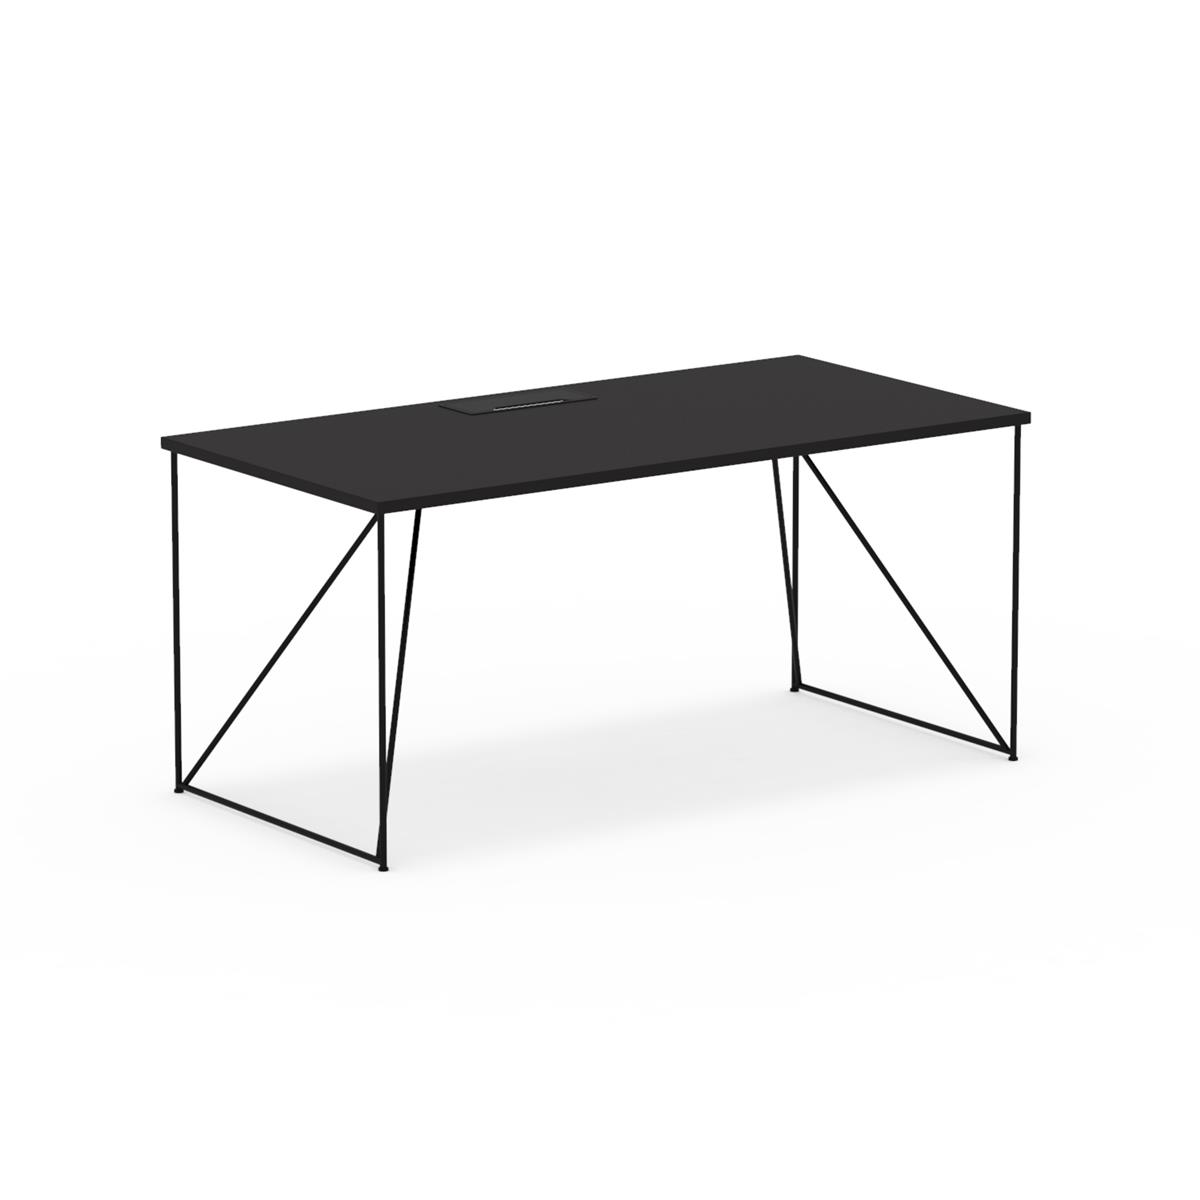 W1 Wired Table 160x80 - sort linoleum & kabelhåndtering